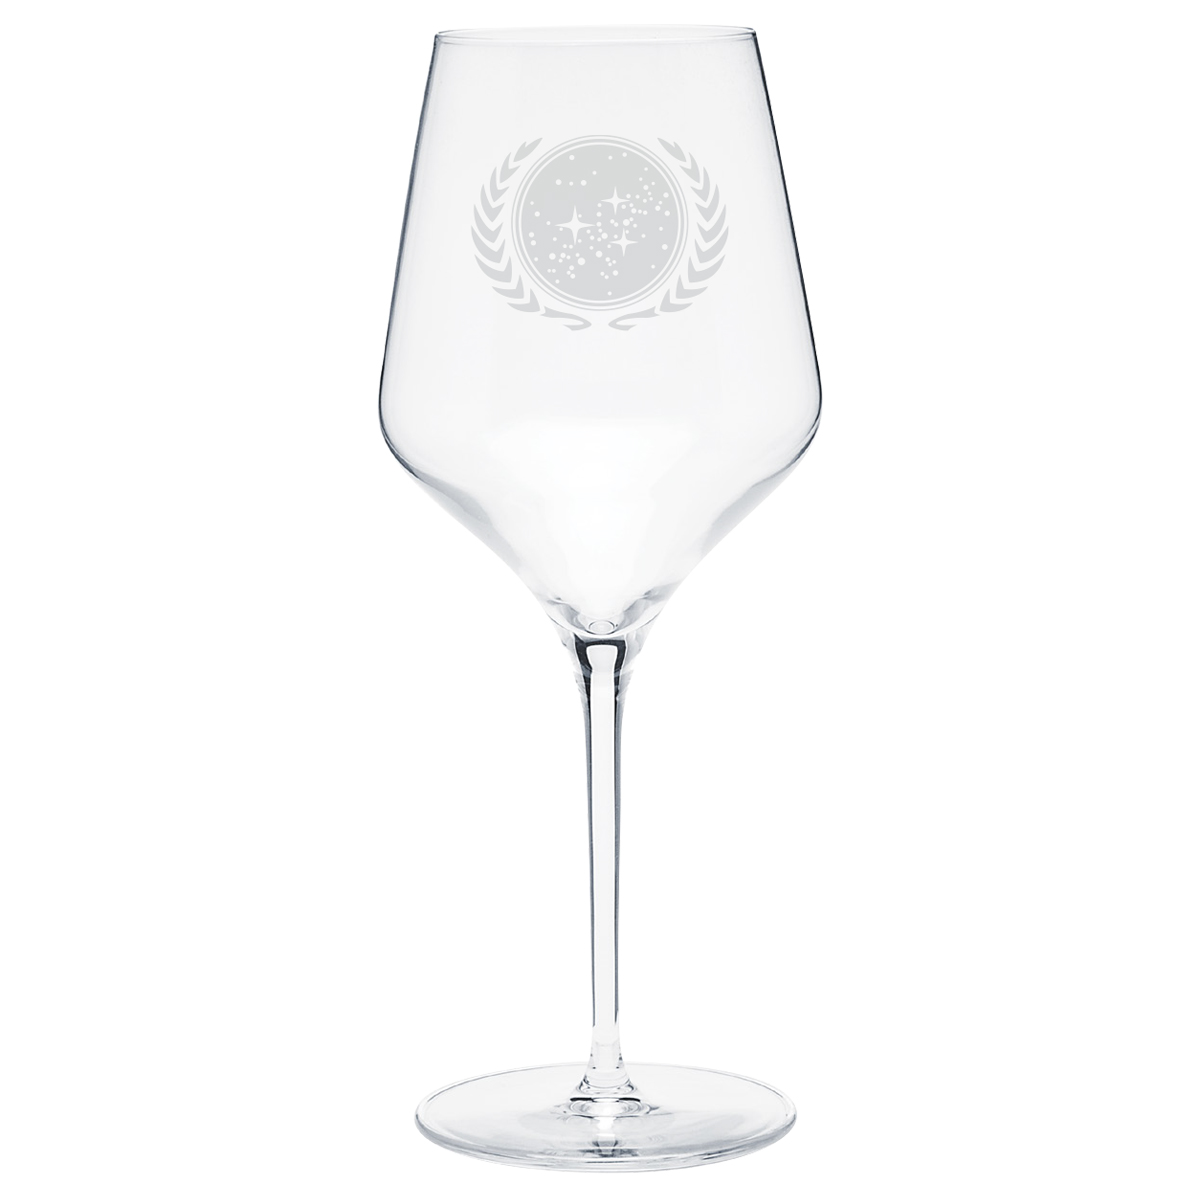 Star Trek United Federation of Planets Prism Wine Glass